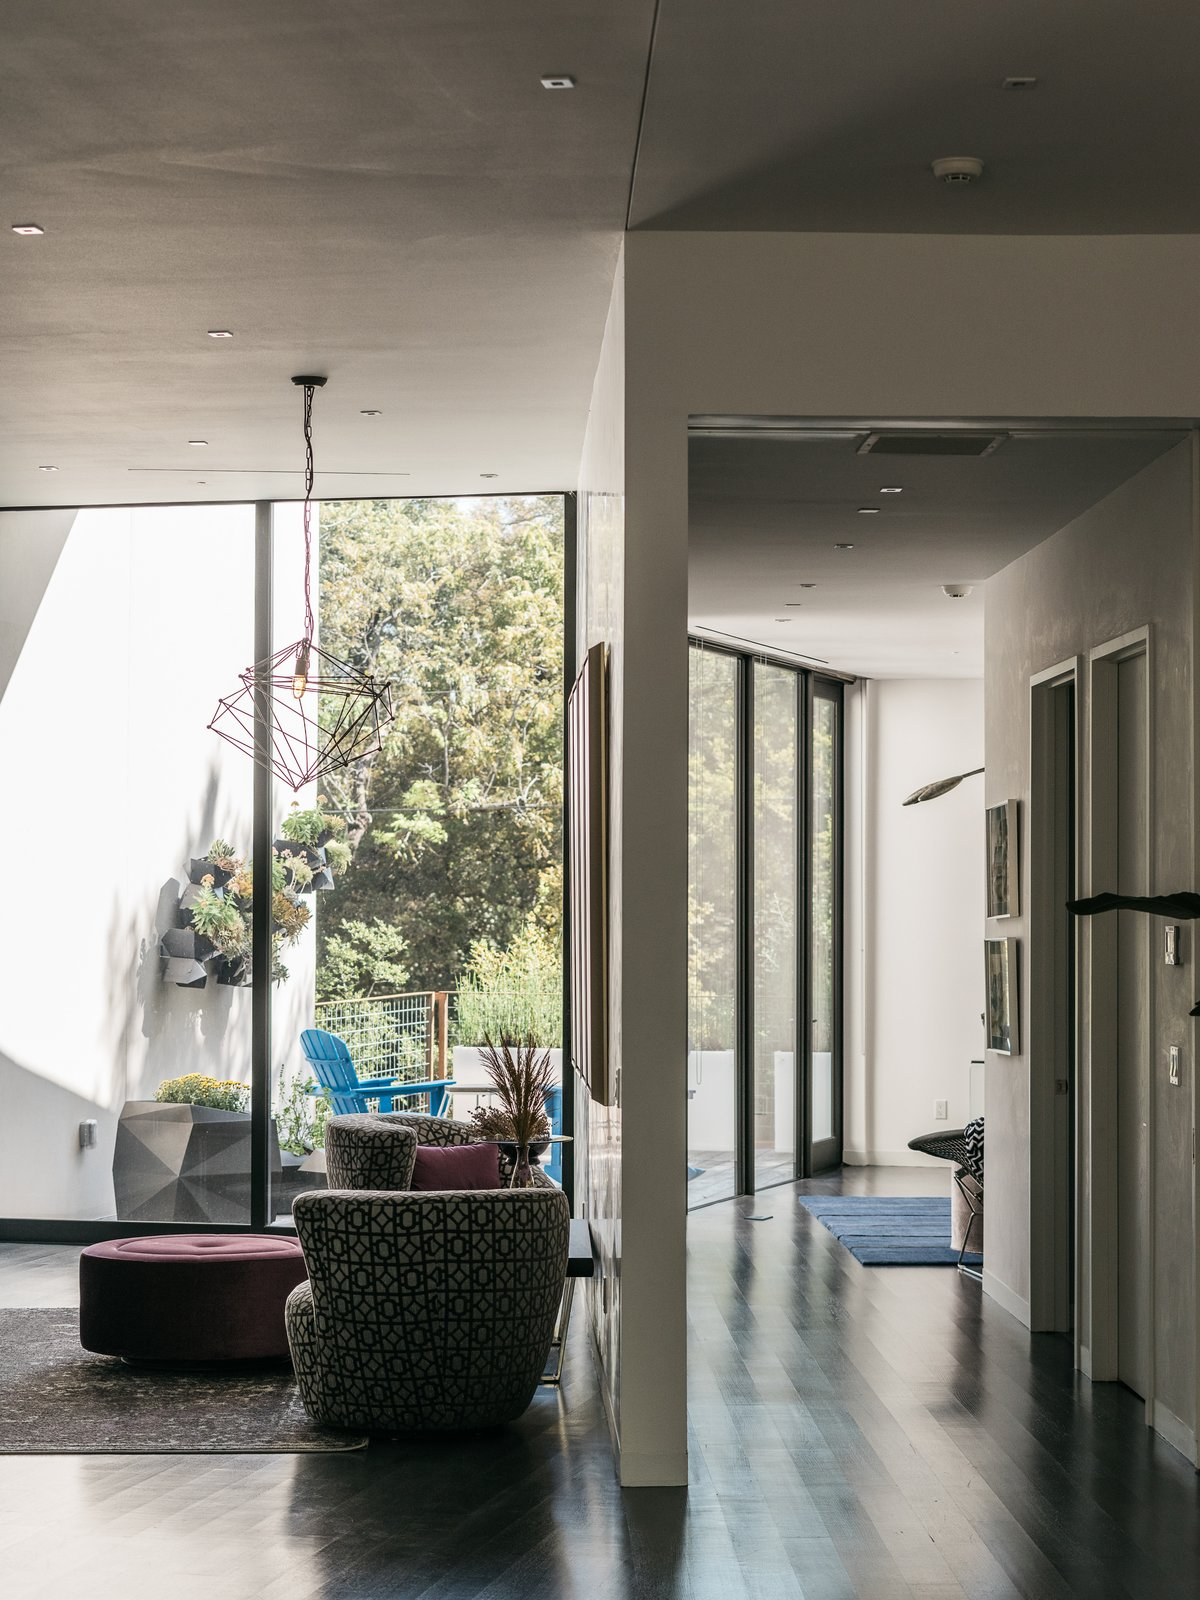 Photo 8 of 18 in A Black Stucco Home in Dallas Is Surrounded